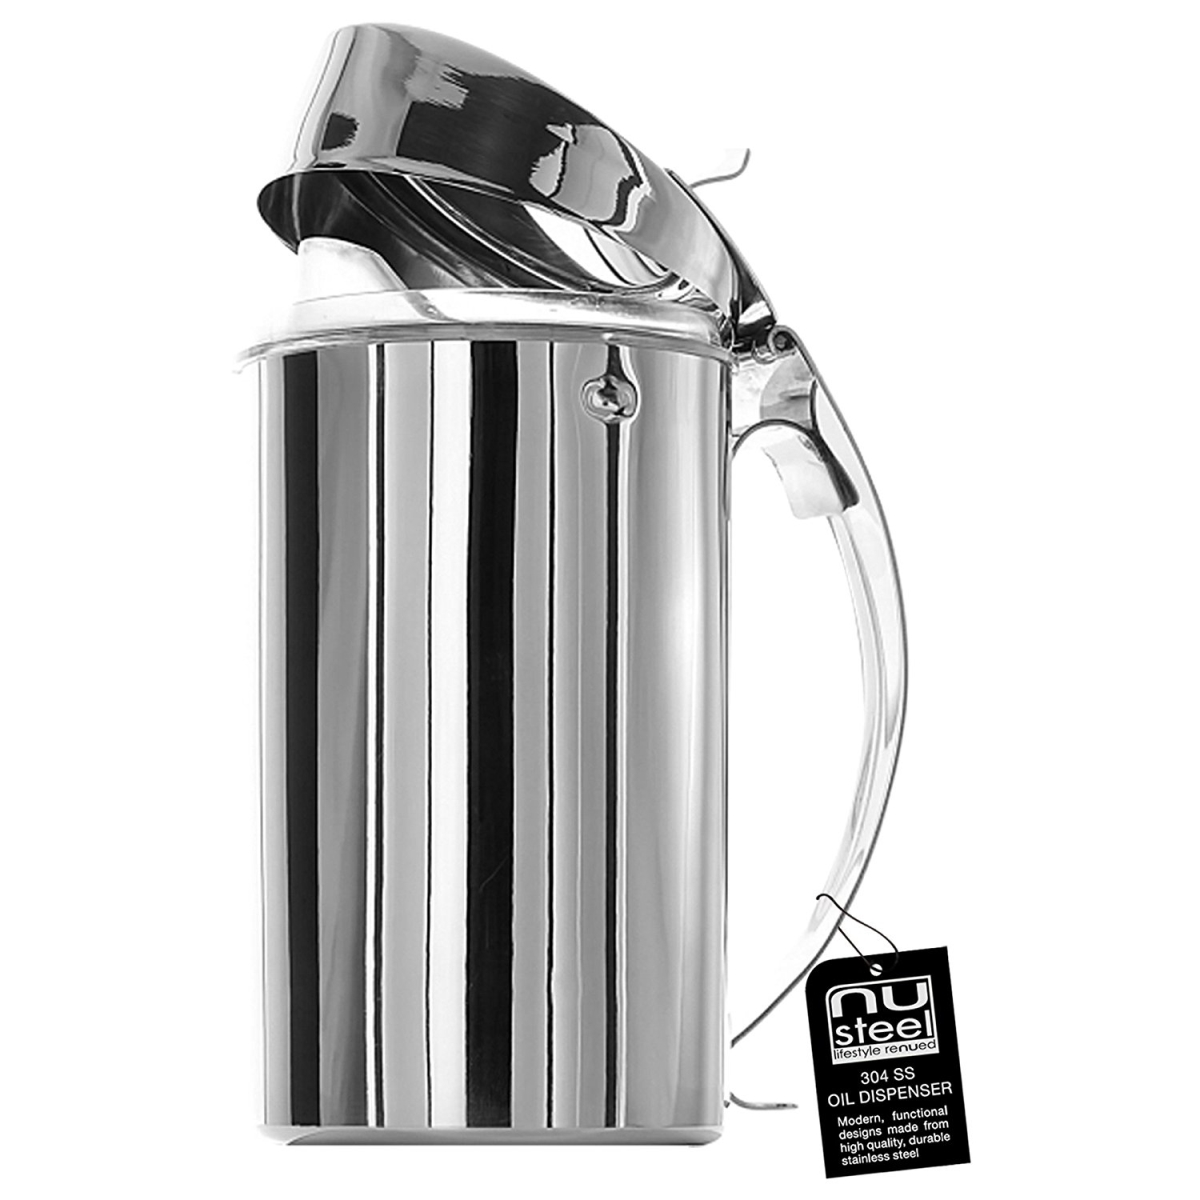 Stainless Steel Oil Dispenser - Stainless Steel